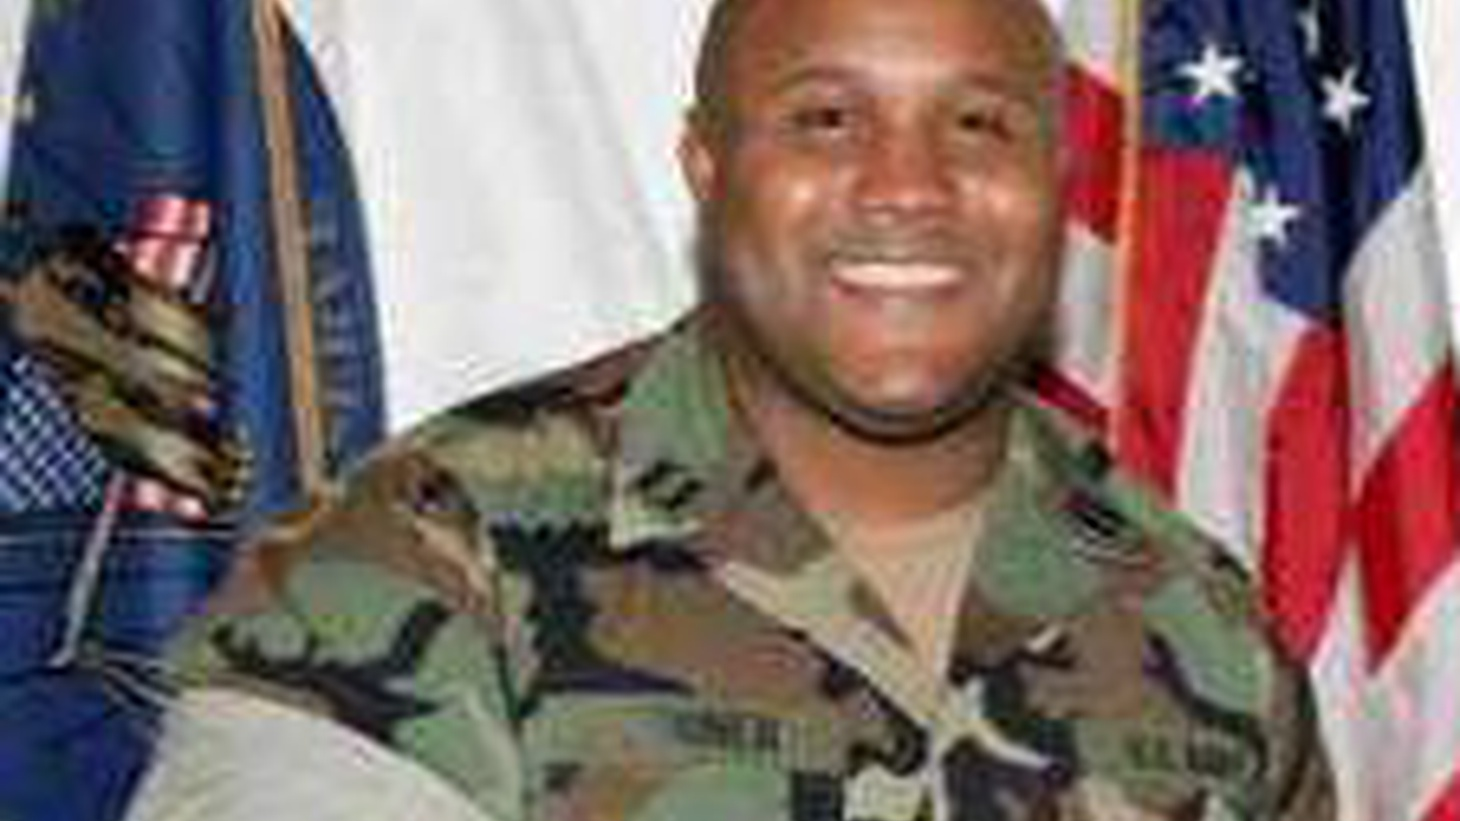 The multi-agency search for fired LA police officer Christopher Dorner continues, as dozens of guards continue to protect officers and their families. We update the search.